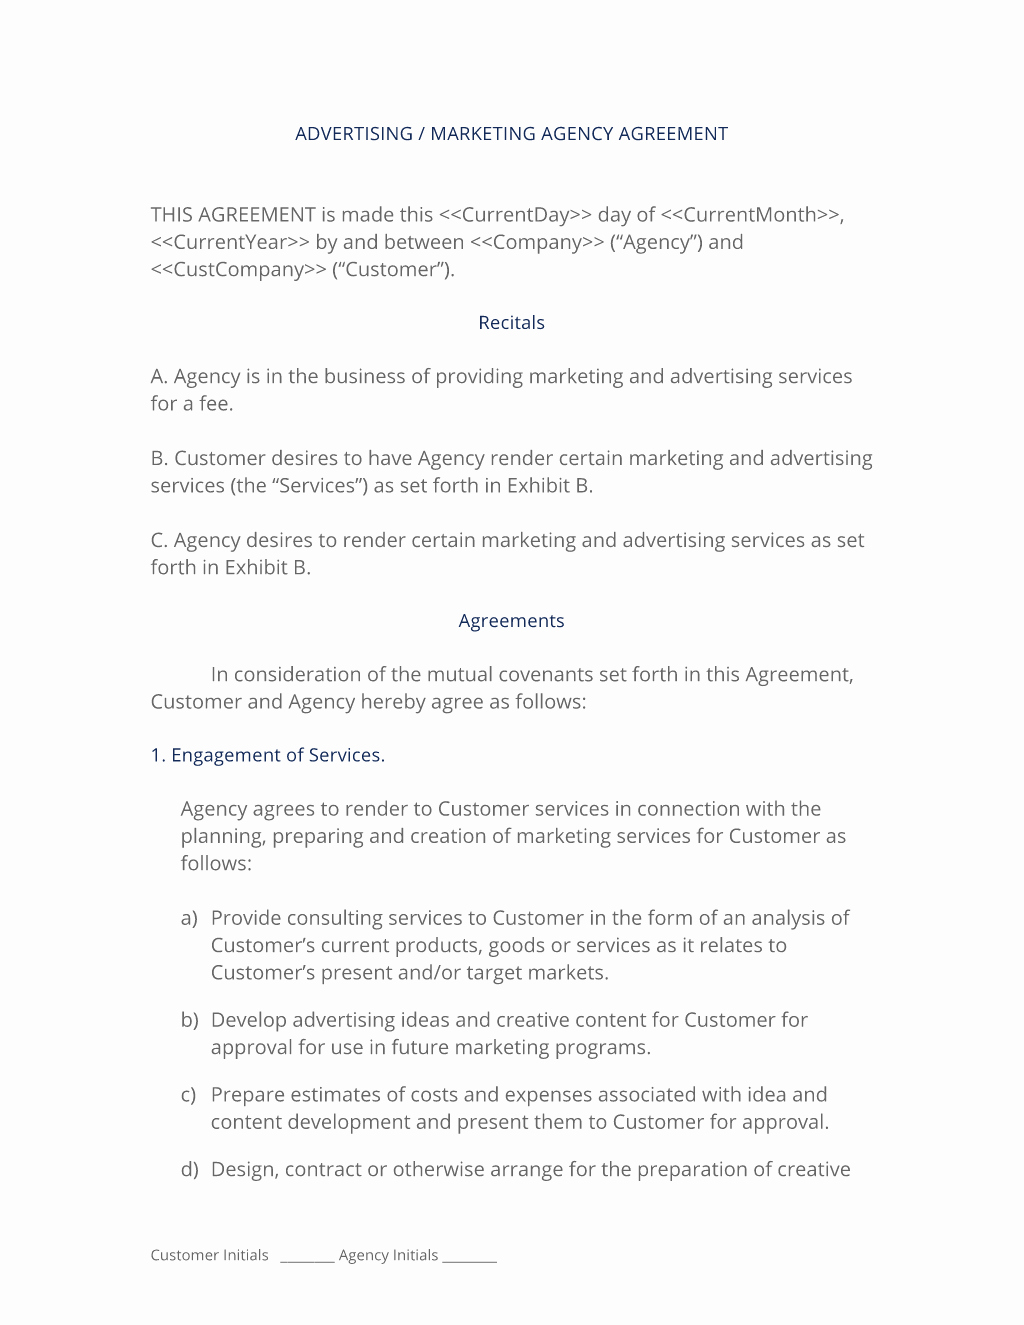 Marketing Agency Agreement Template Lovely Advertising and Marketing Agency Contract 3 Easy Steps